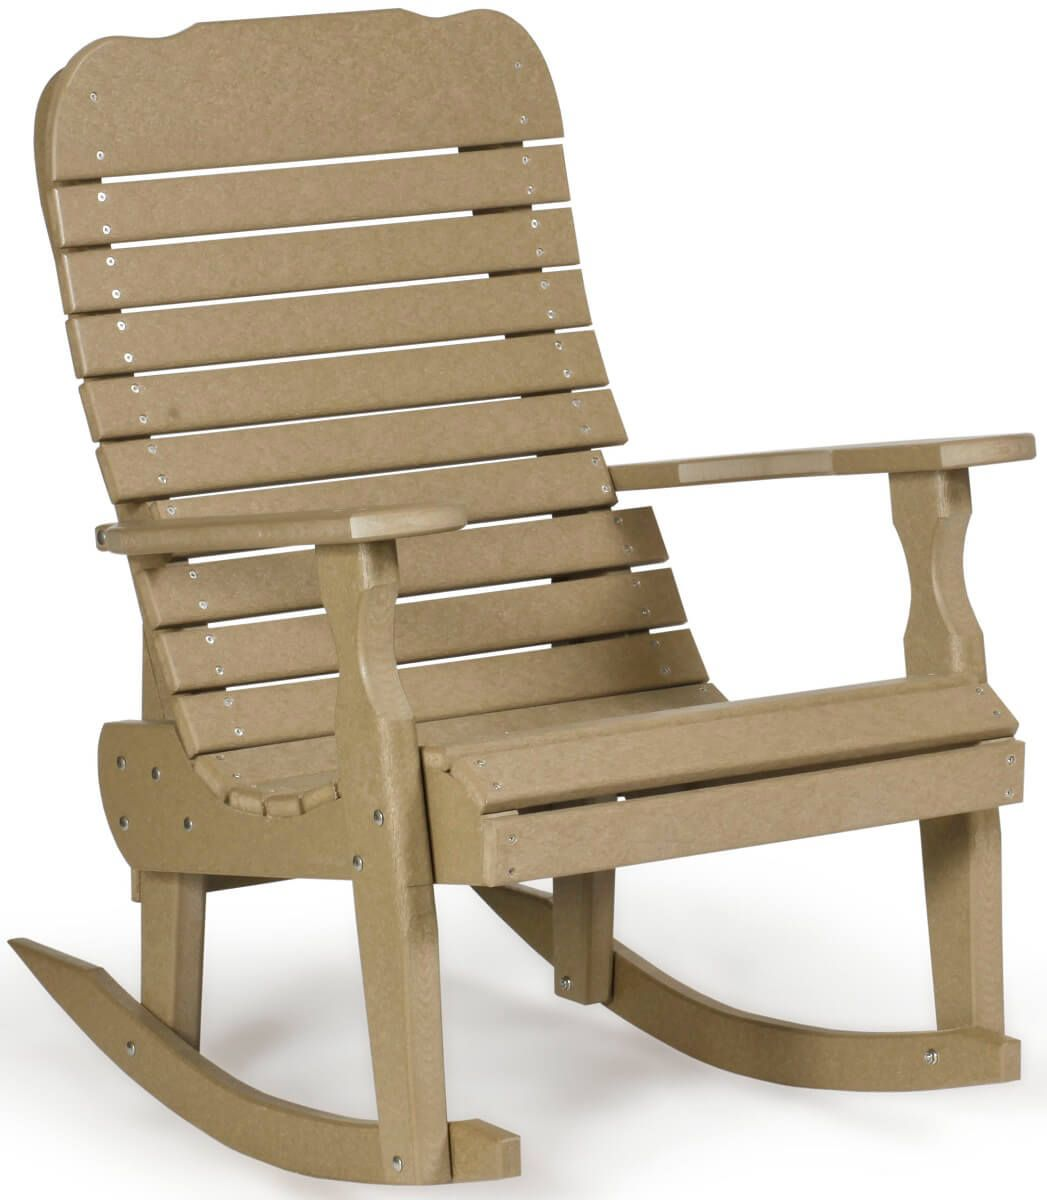 Amish Rocking Chair Whitehaven Outdoor Rocker Chair Countryside Amish Furniture